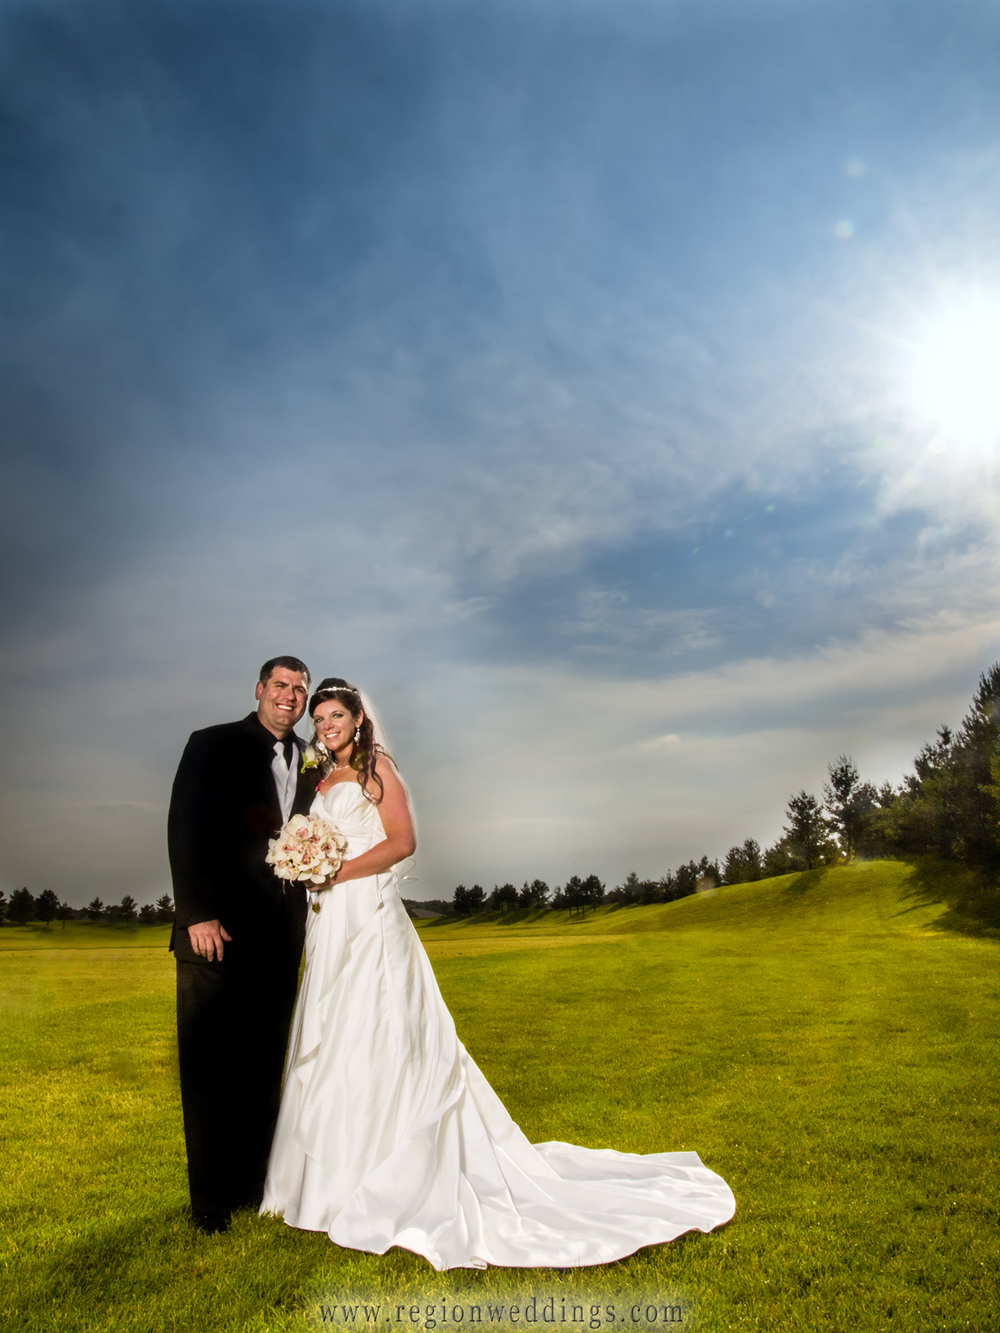 Bride and groom formal wedding photo on the golf course at White Hawk Country Club.